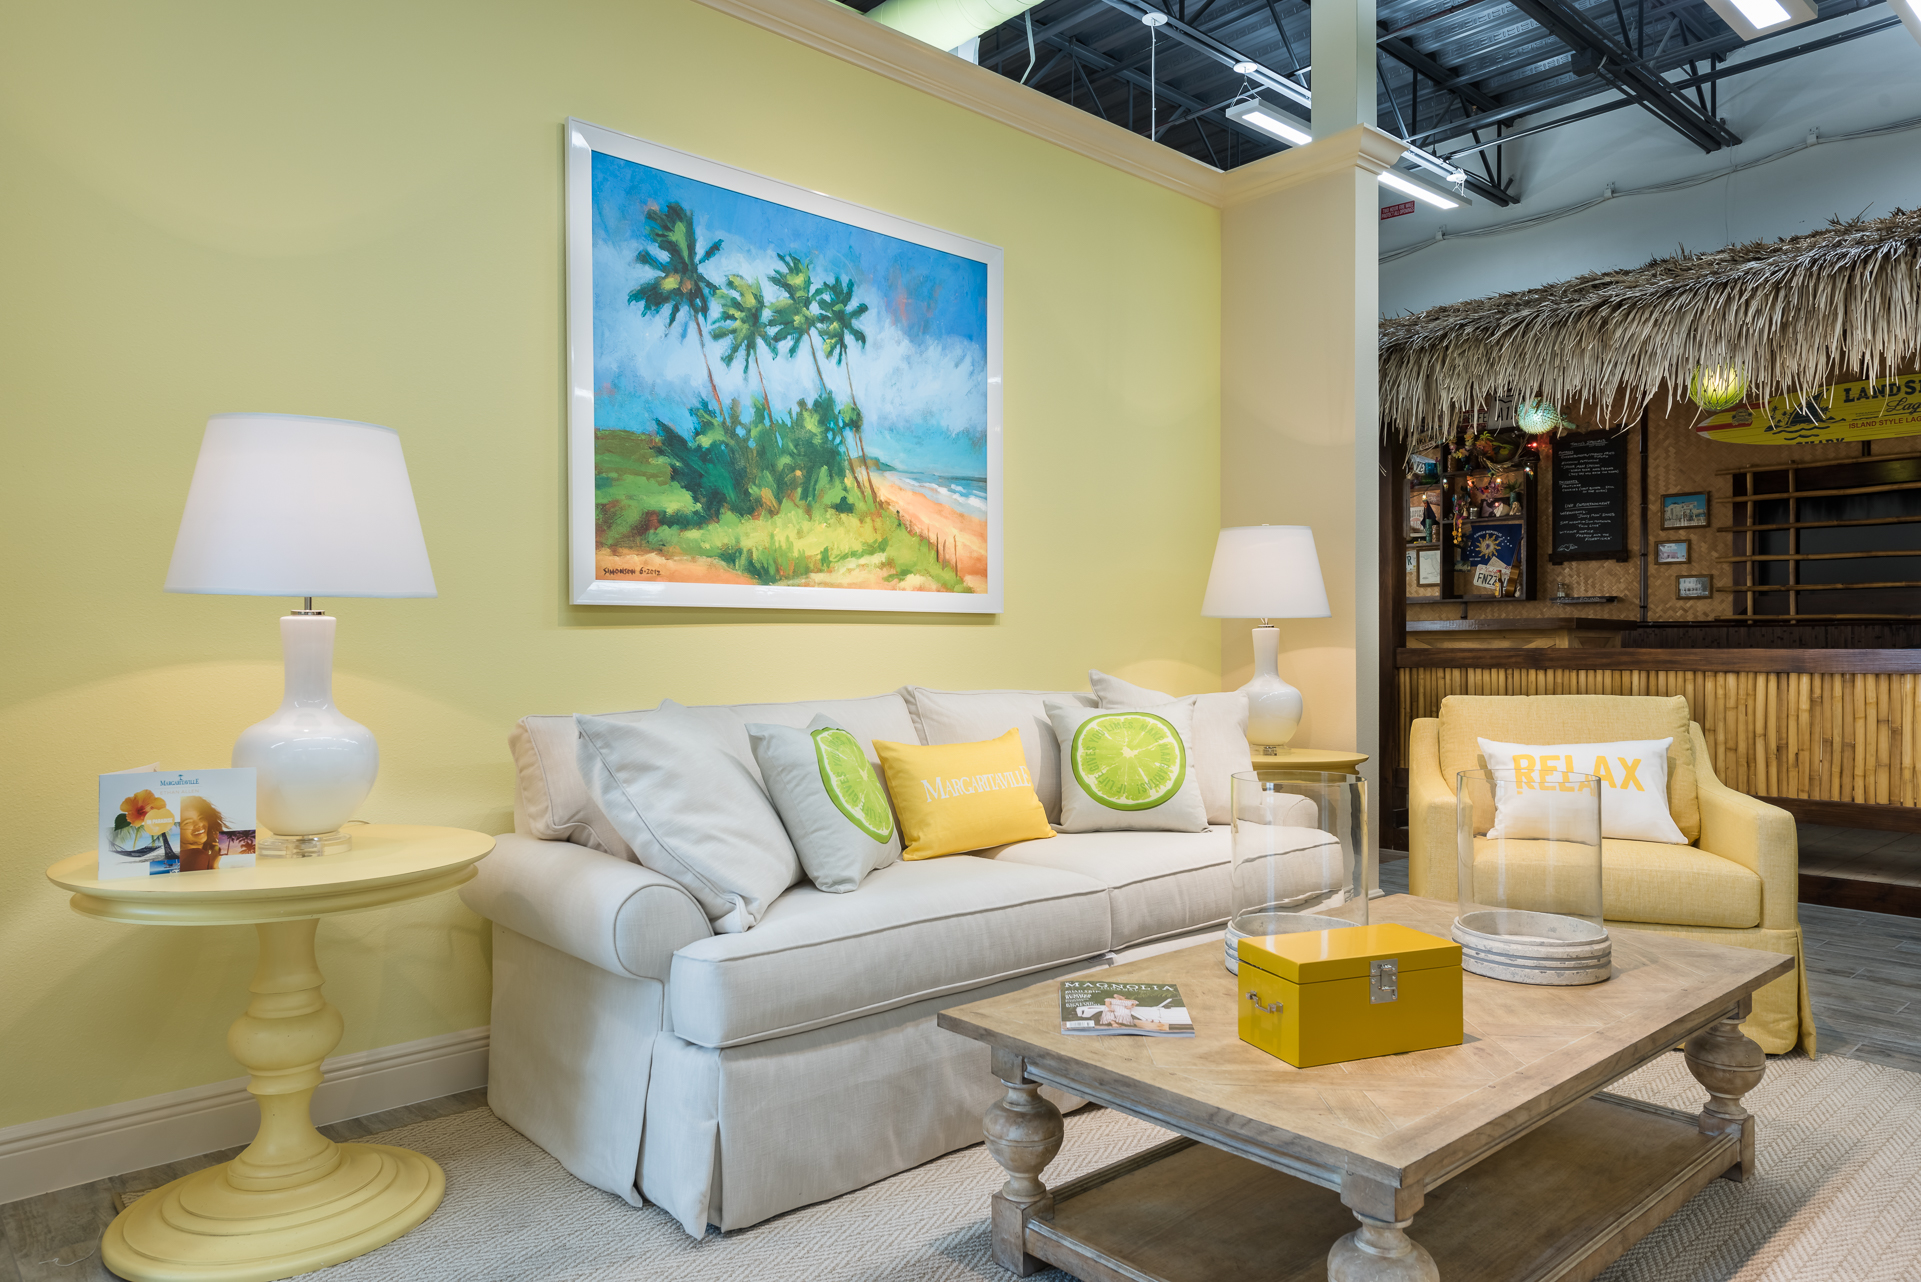 When It Opens Its Doors In 2018, Margaritaville Resort Orlando Will Feature  1,000 Residential Units Including A Mix Of Resort Vacation Homes And  Timeshare ...